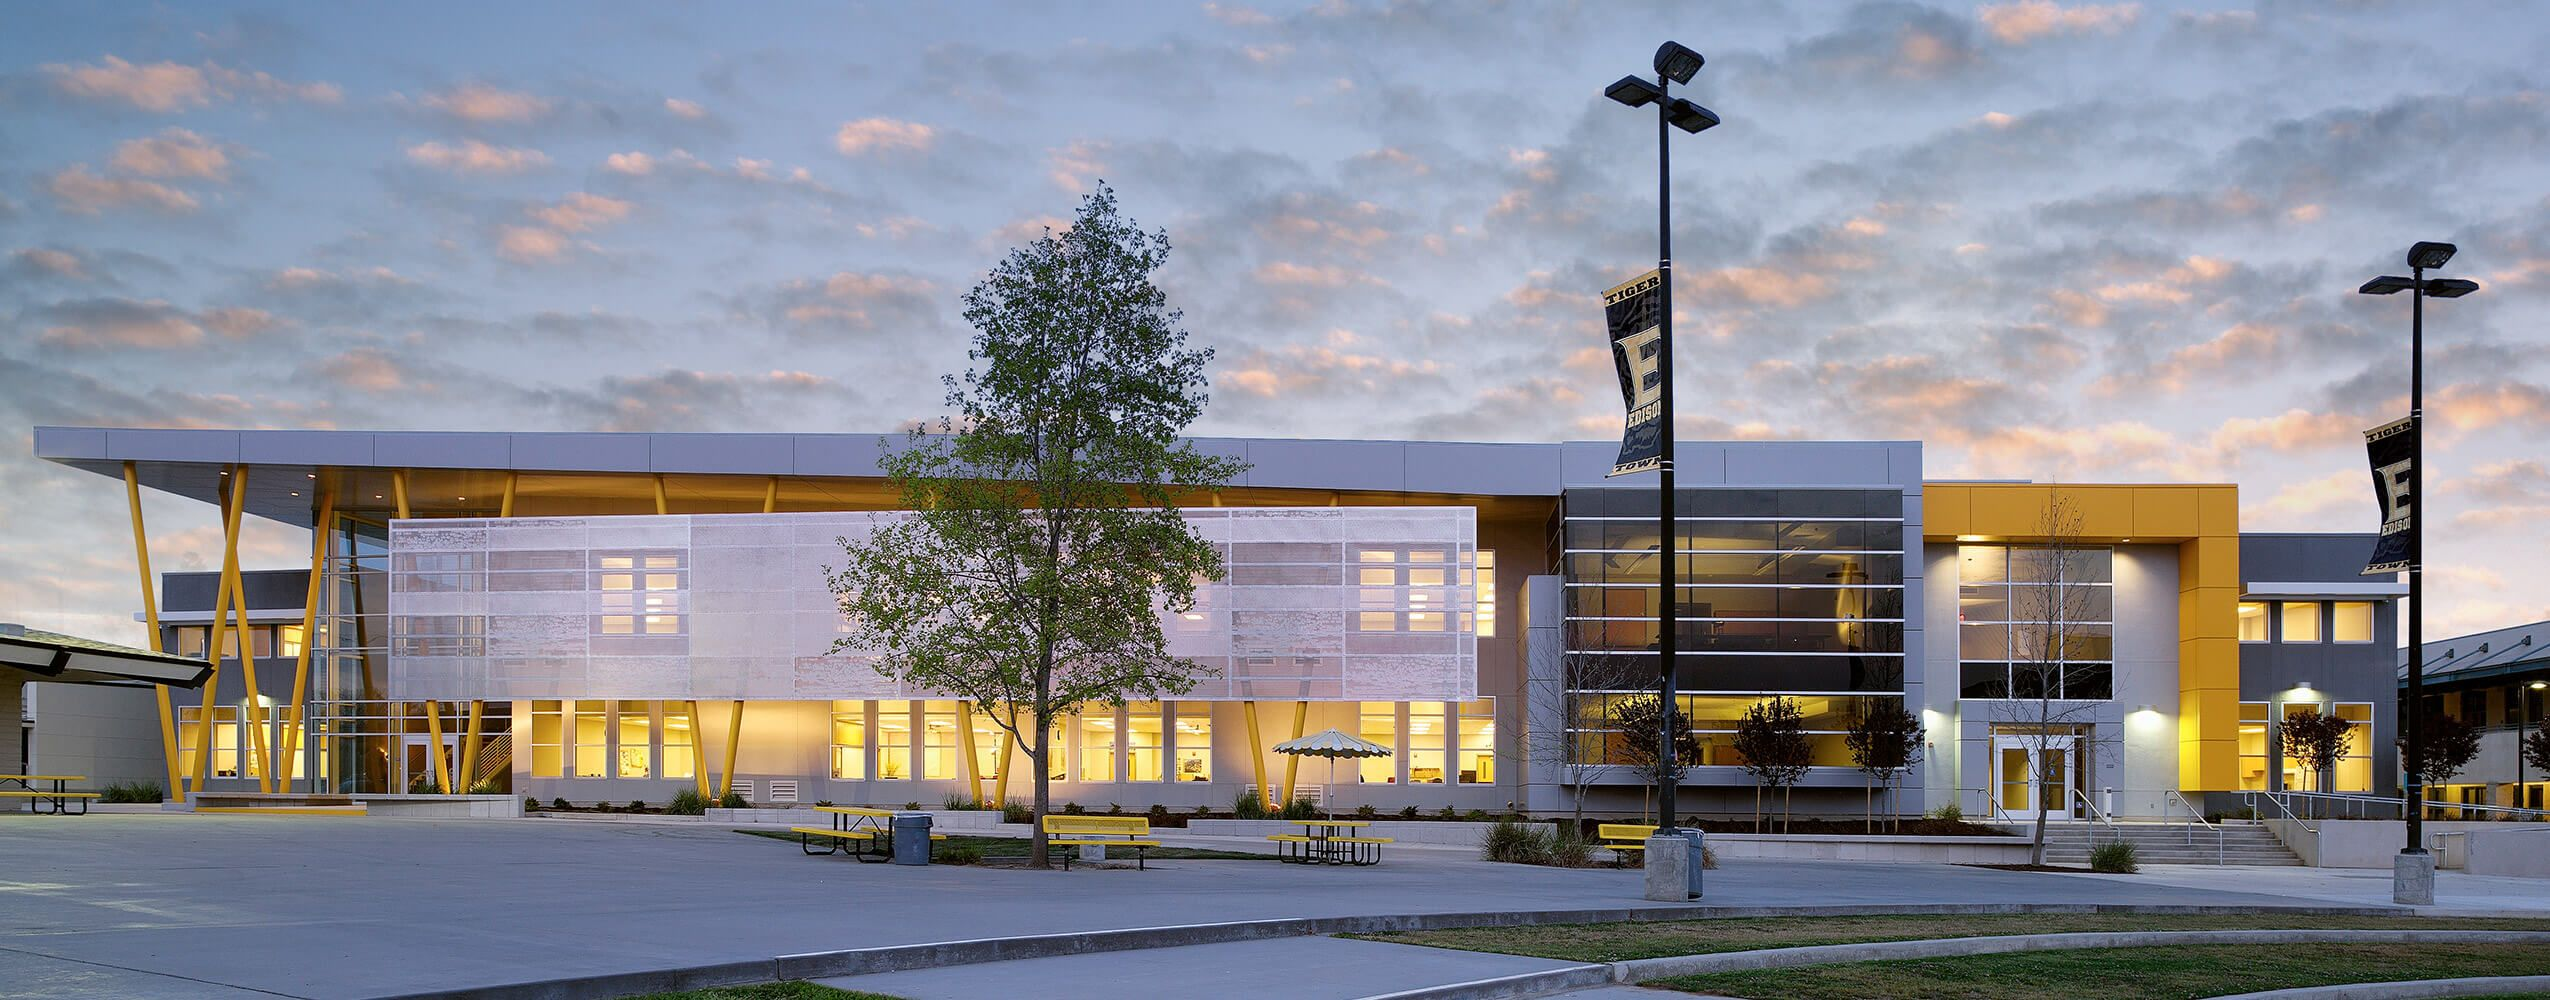 The Edison High School Academic Building by Darden Architects